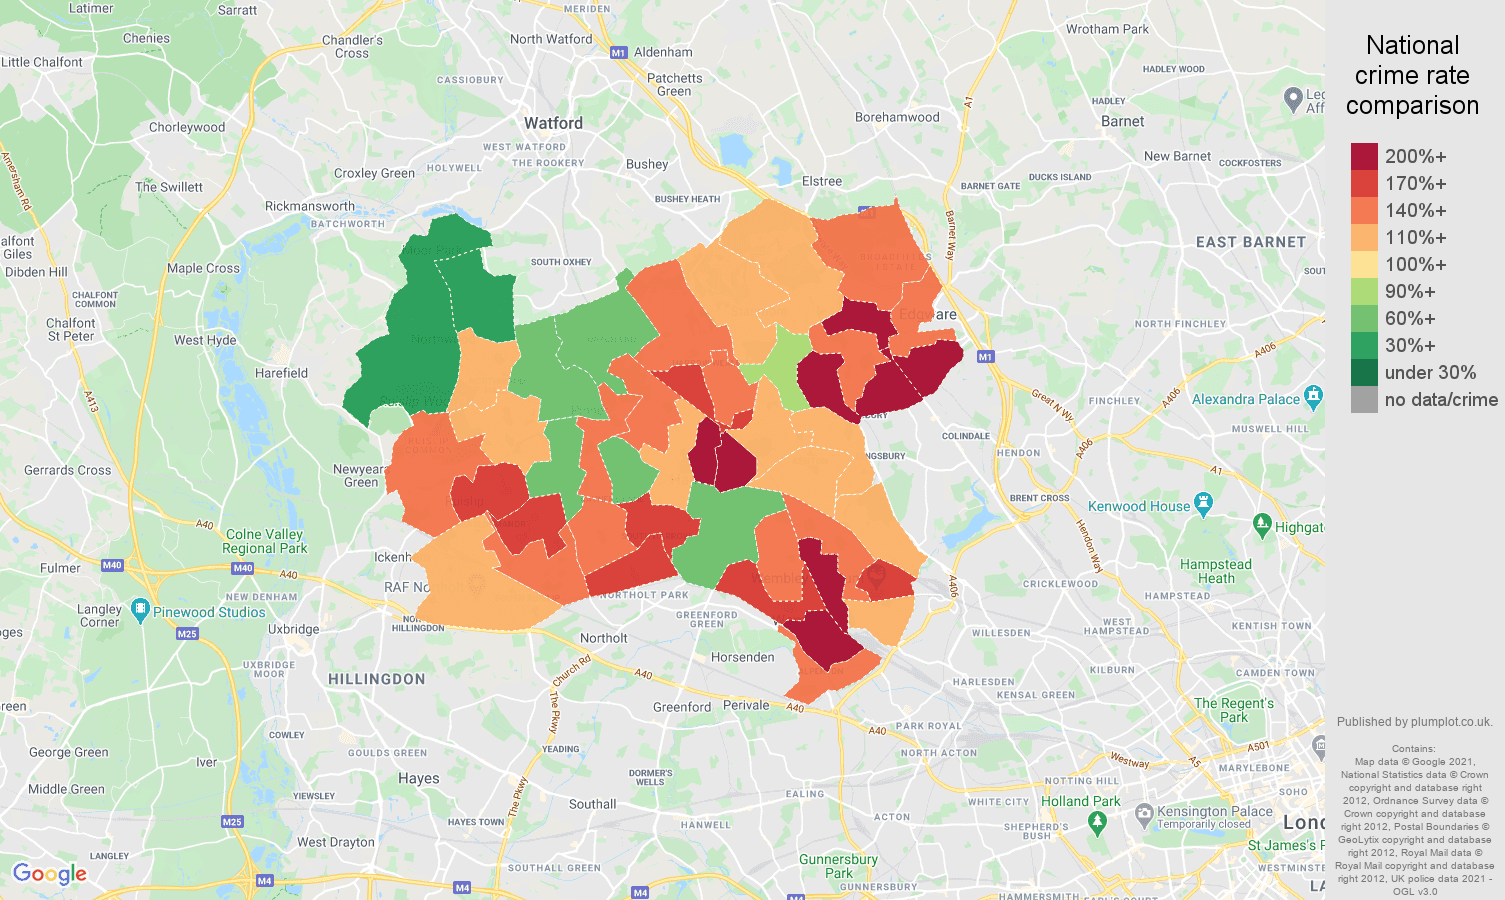 Harrow antisocial behaviour crime rate comparison map